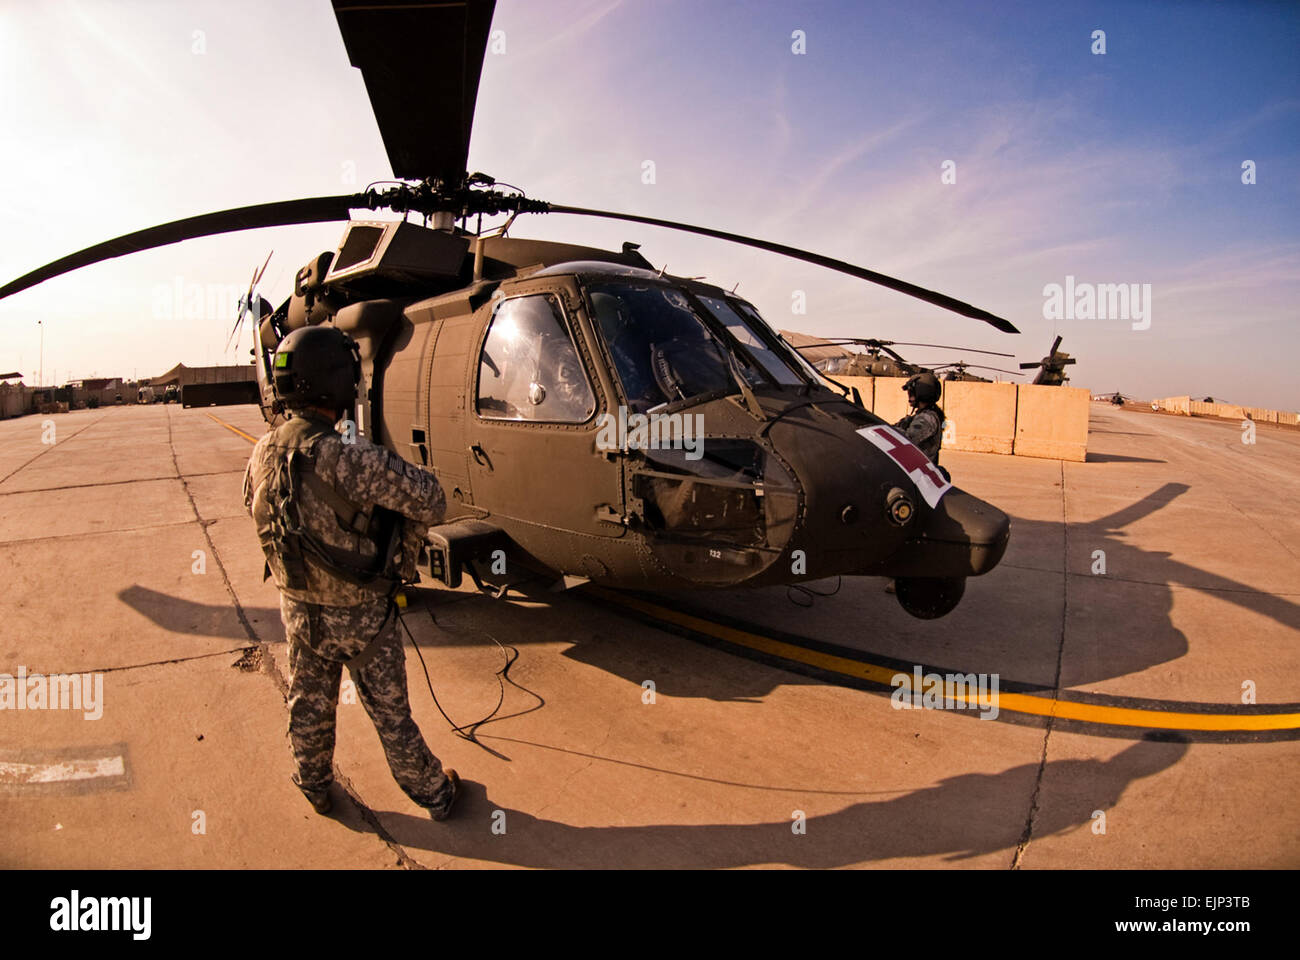 Army helicopter crew chiefs of C Company, 3rd Battalion, 126th Aviation Regiment, stand outside an HH-60M MEDEVAC - Stock Image